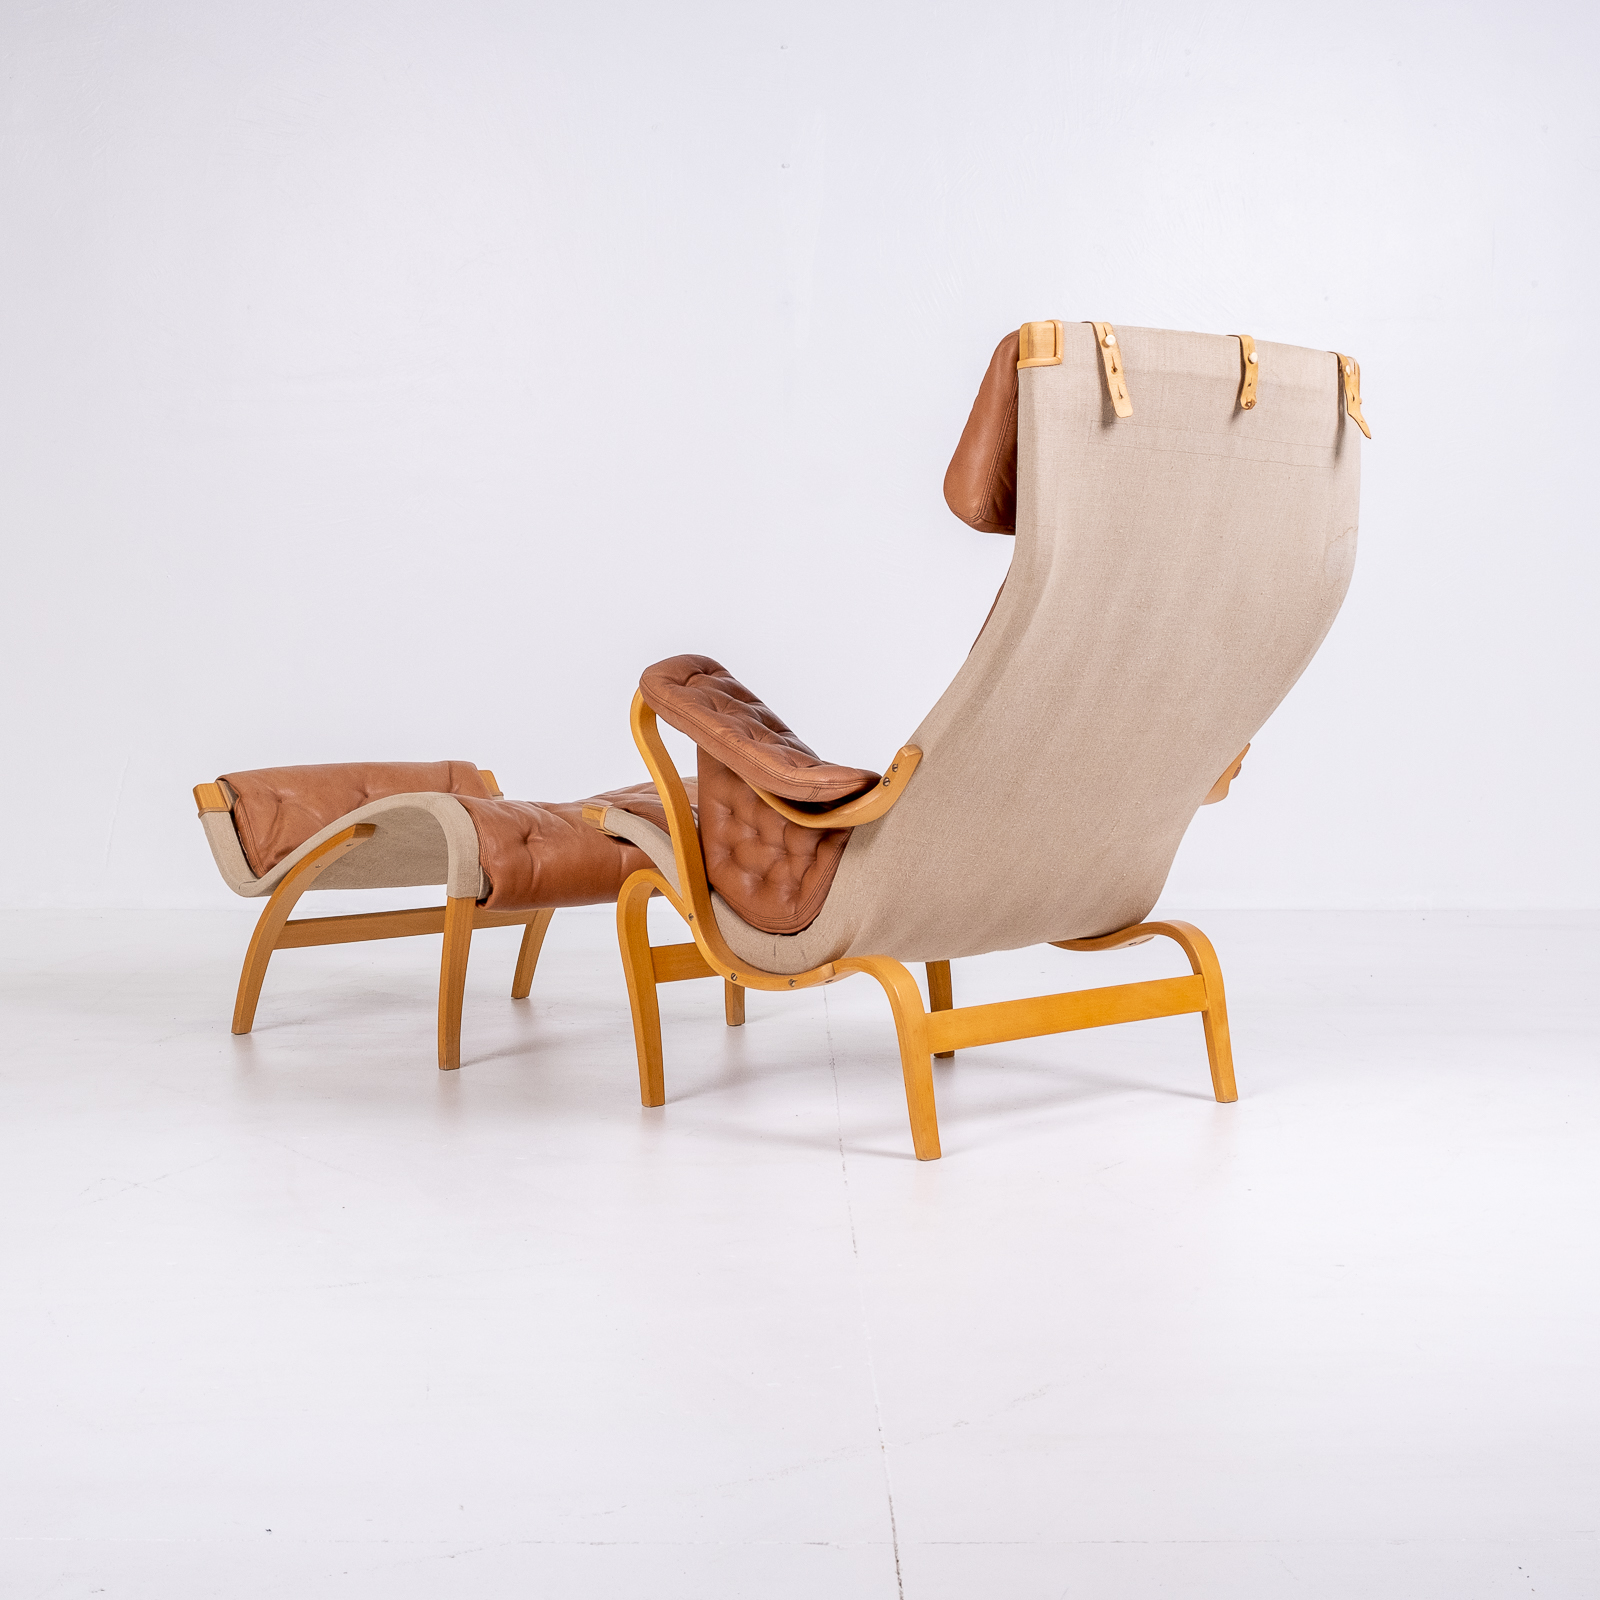 Pernilla 69 Chair With Footstool By Bruno Mathsson For Dux, 1960s, Sweden 04